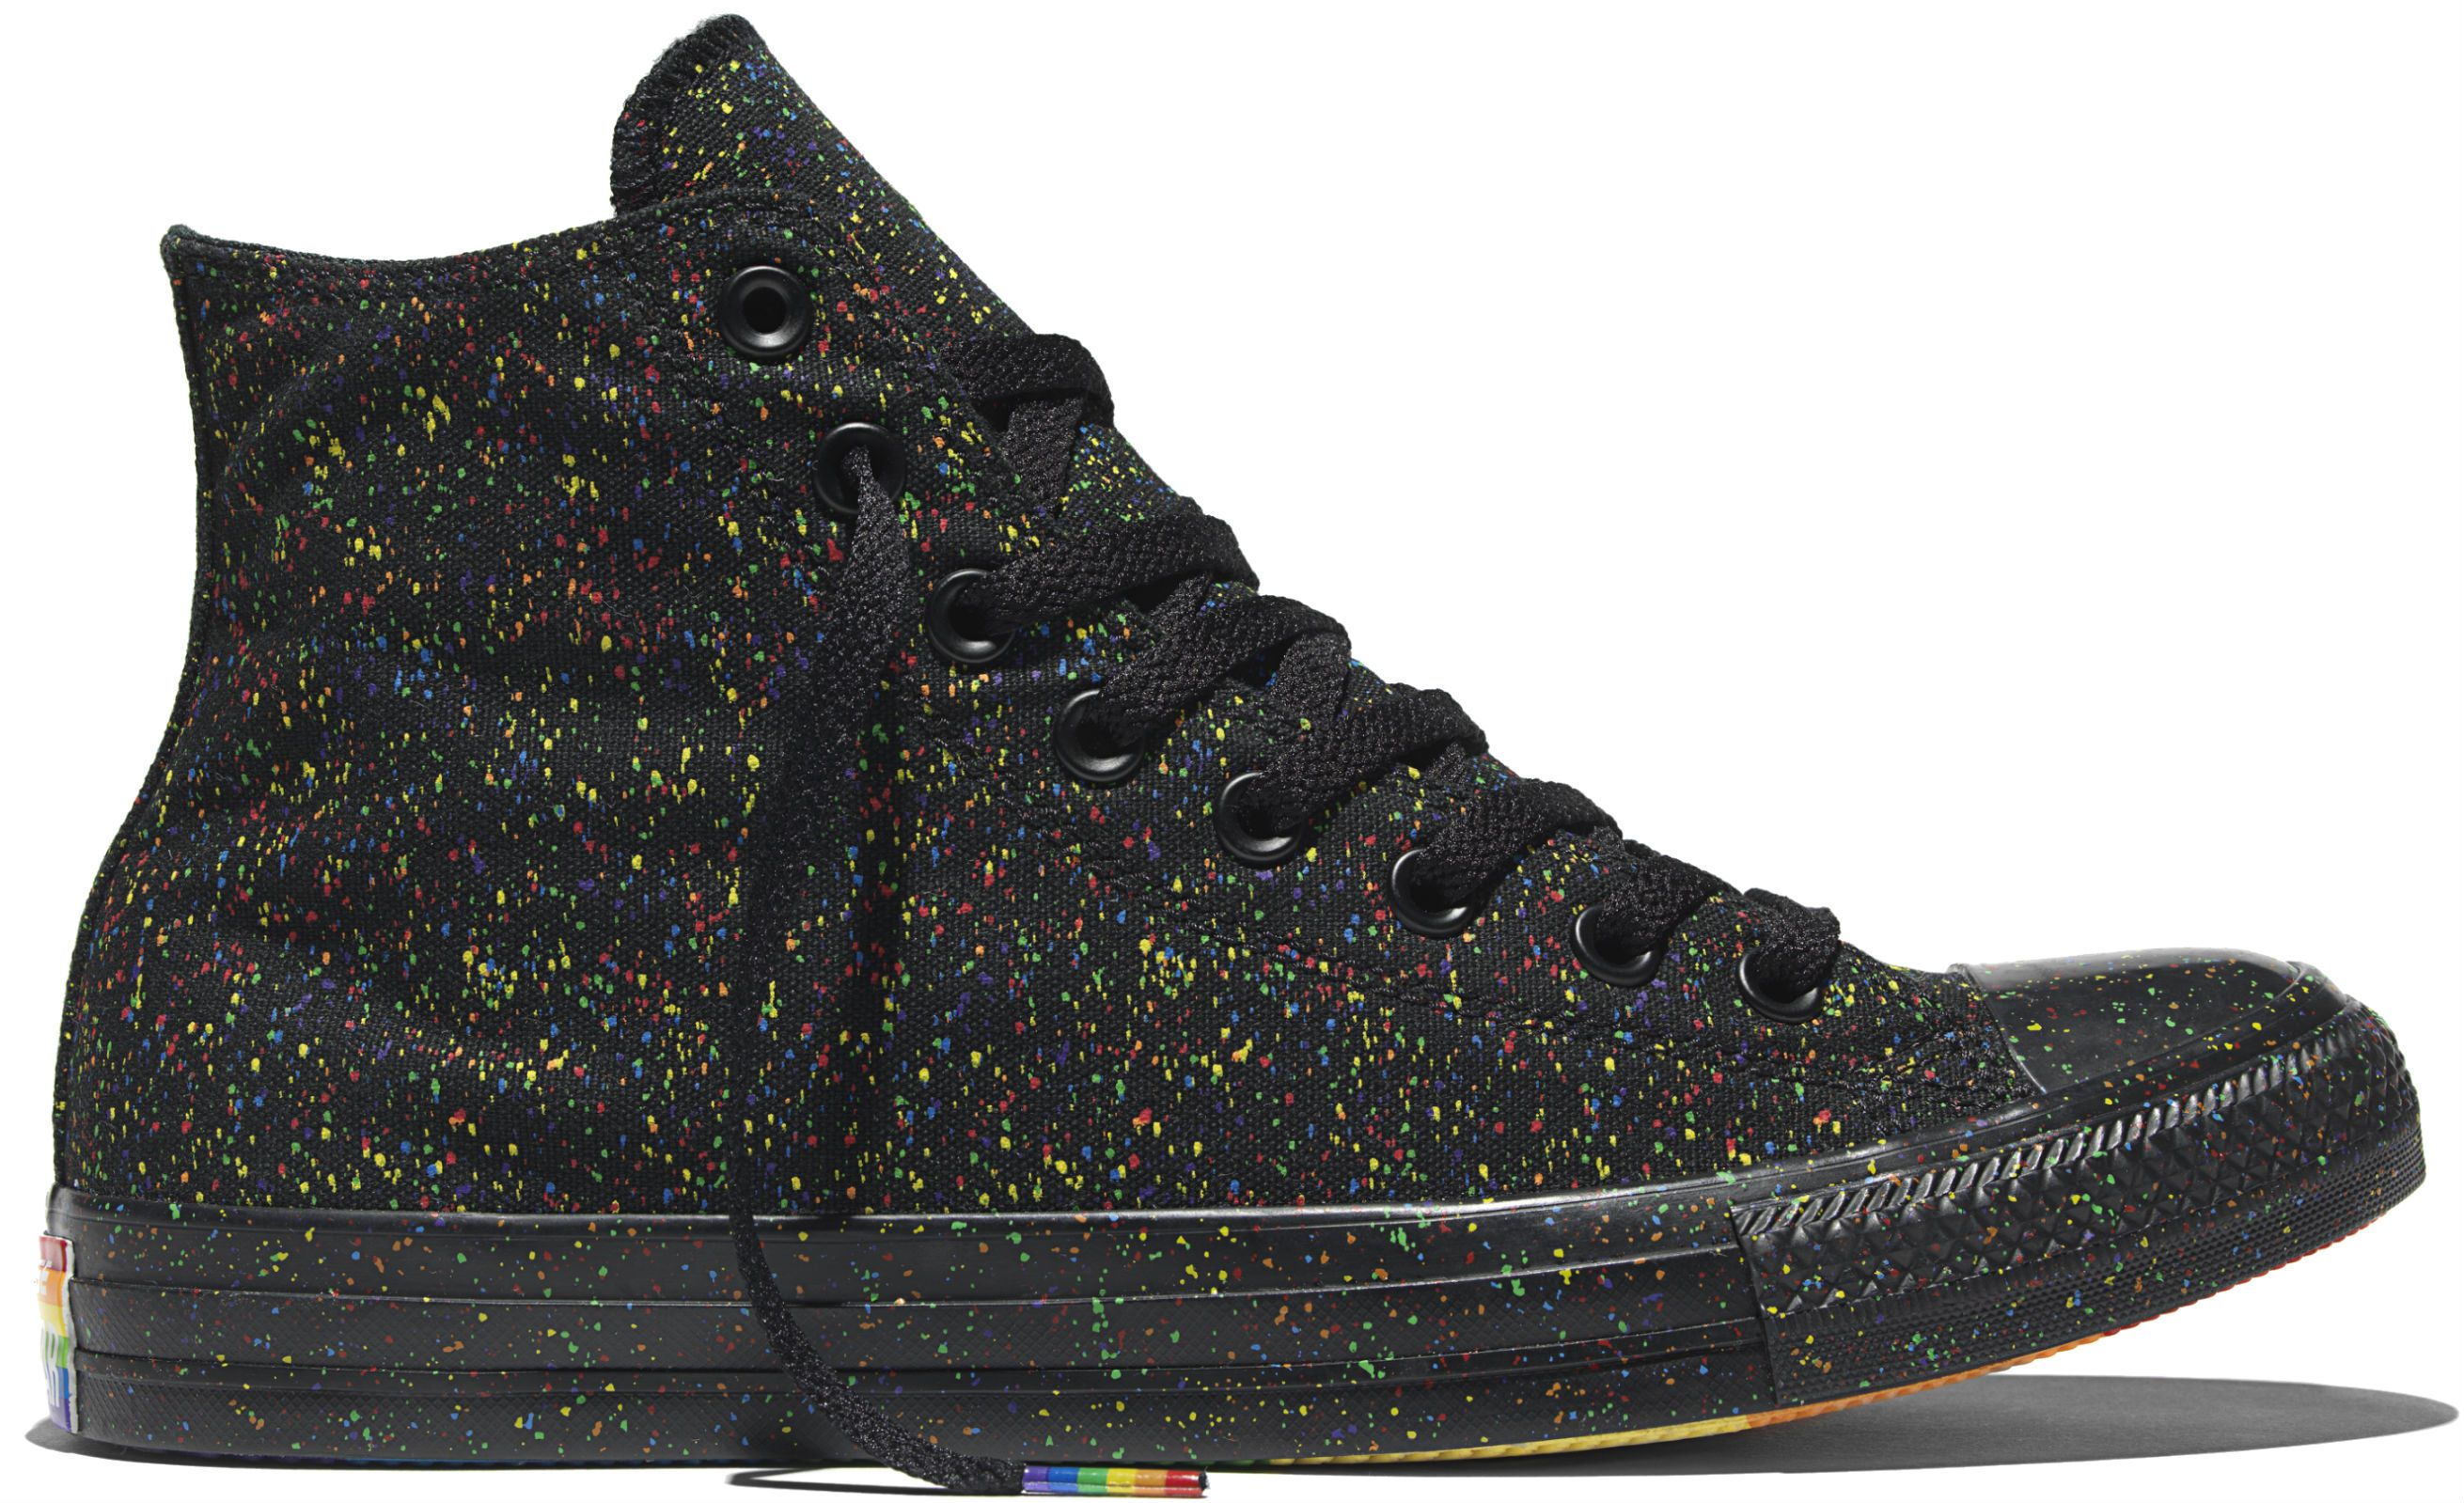 ab2de9d387c4 Converse Just Released Its New Pride Collection of Rainbow Sneakers -  Rackedclockmenumore-arrow